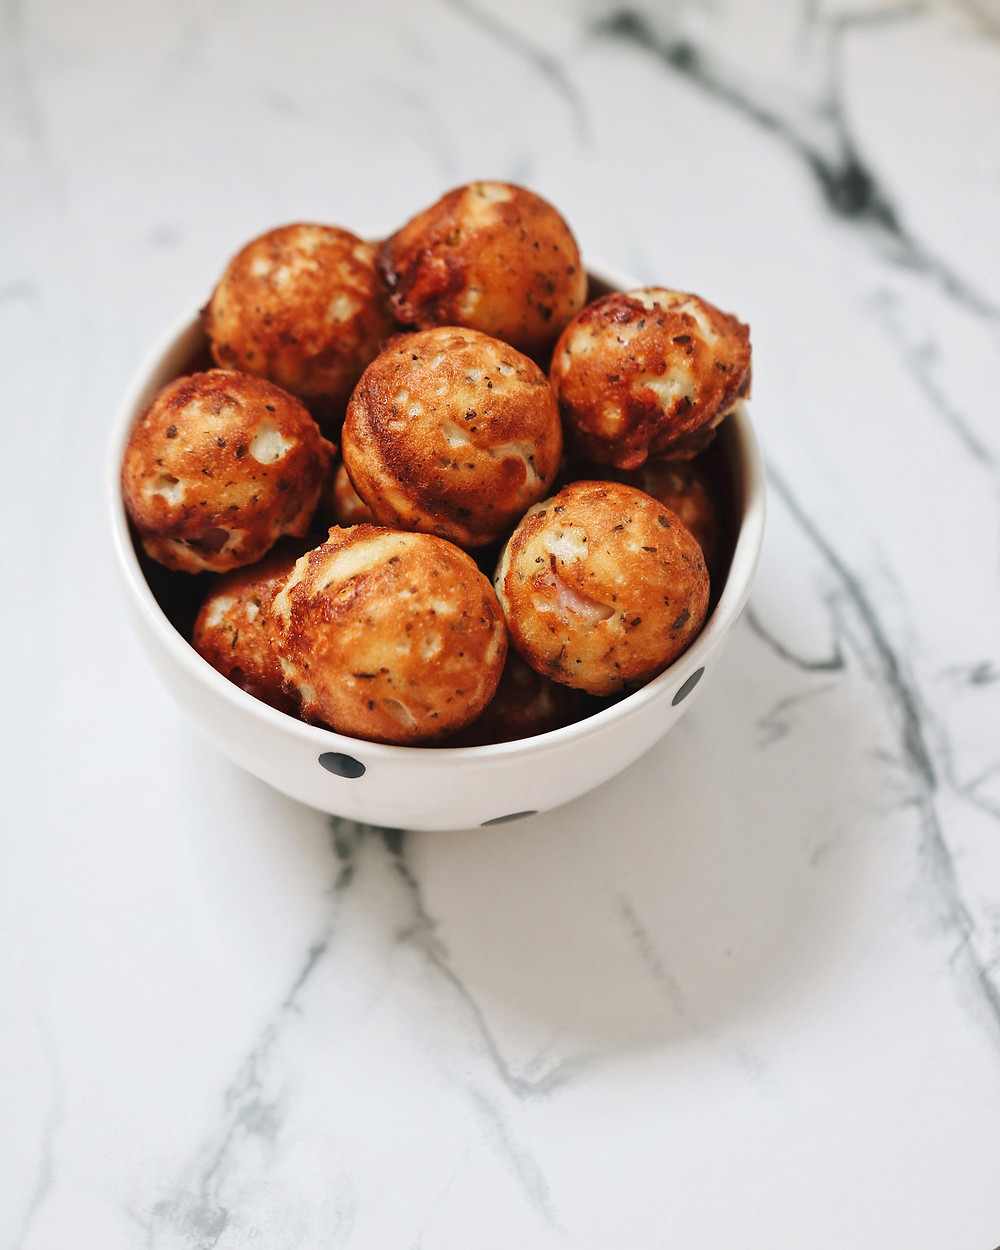 Gluten Free Skyr, Cheddar and Pancetta Bites in a bowl on a white marble background.